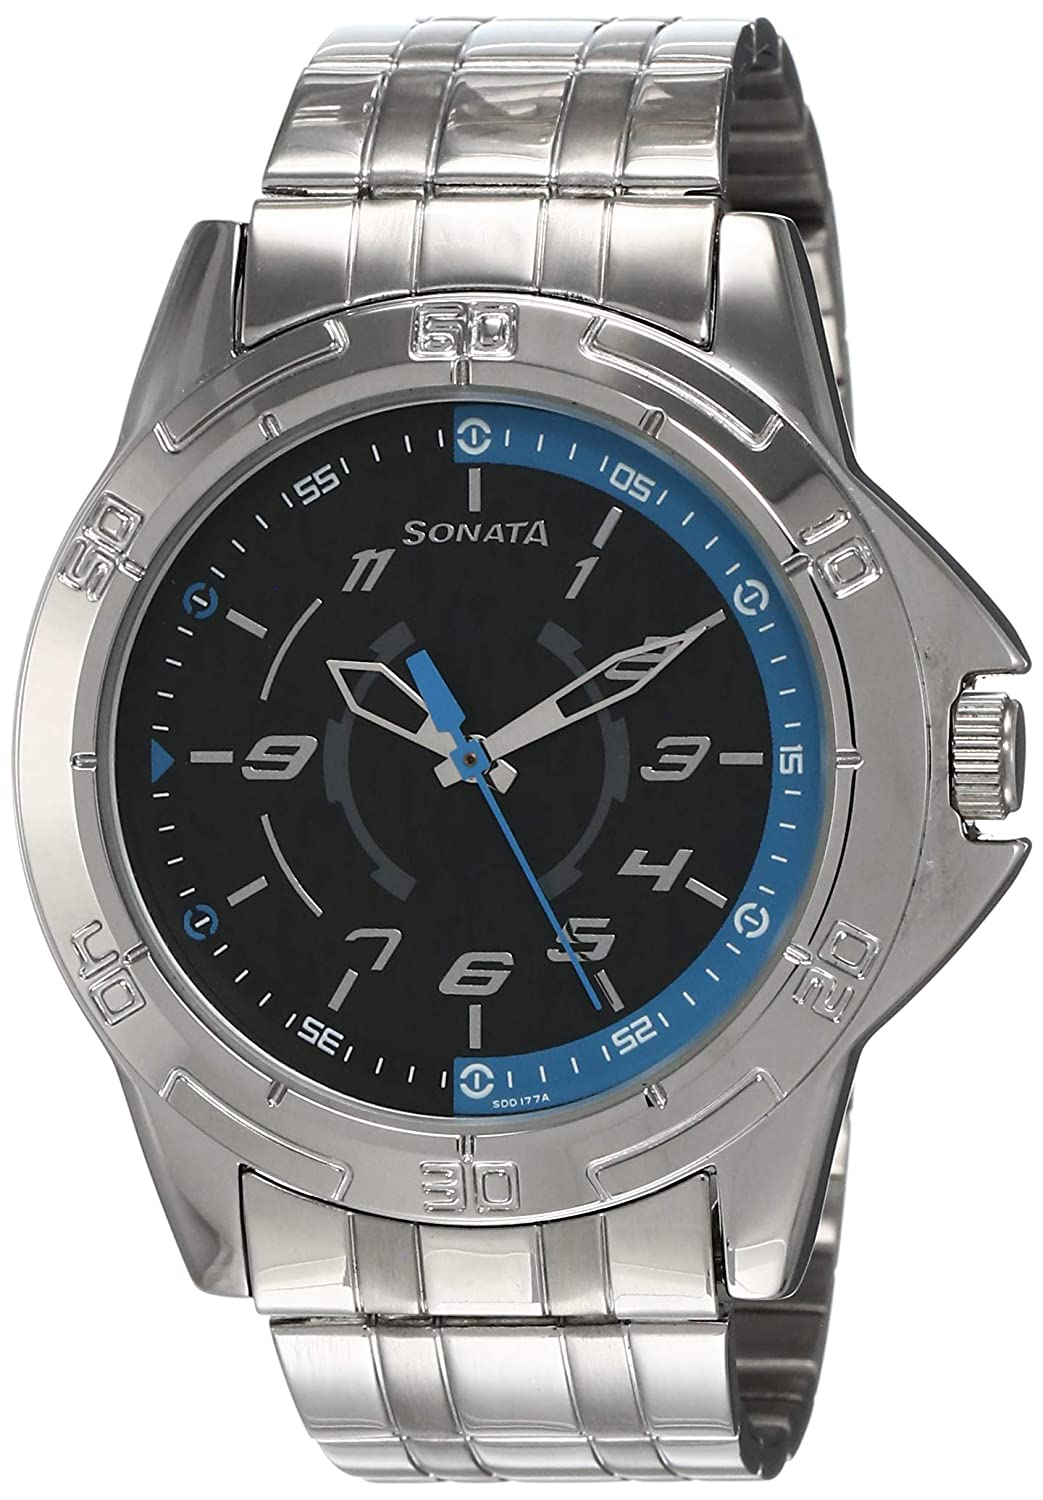 Sonata Analog Black Dial Men's Watch -NM77001SM01 / NL77001SM01